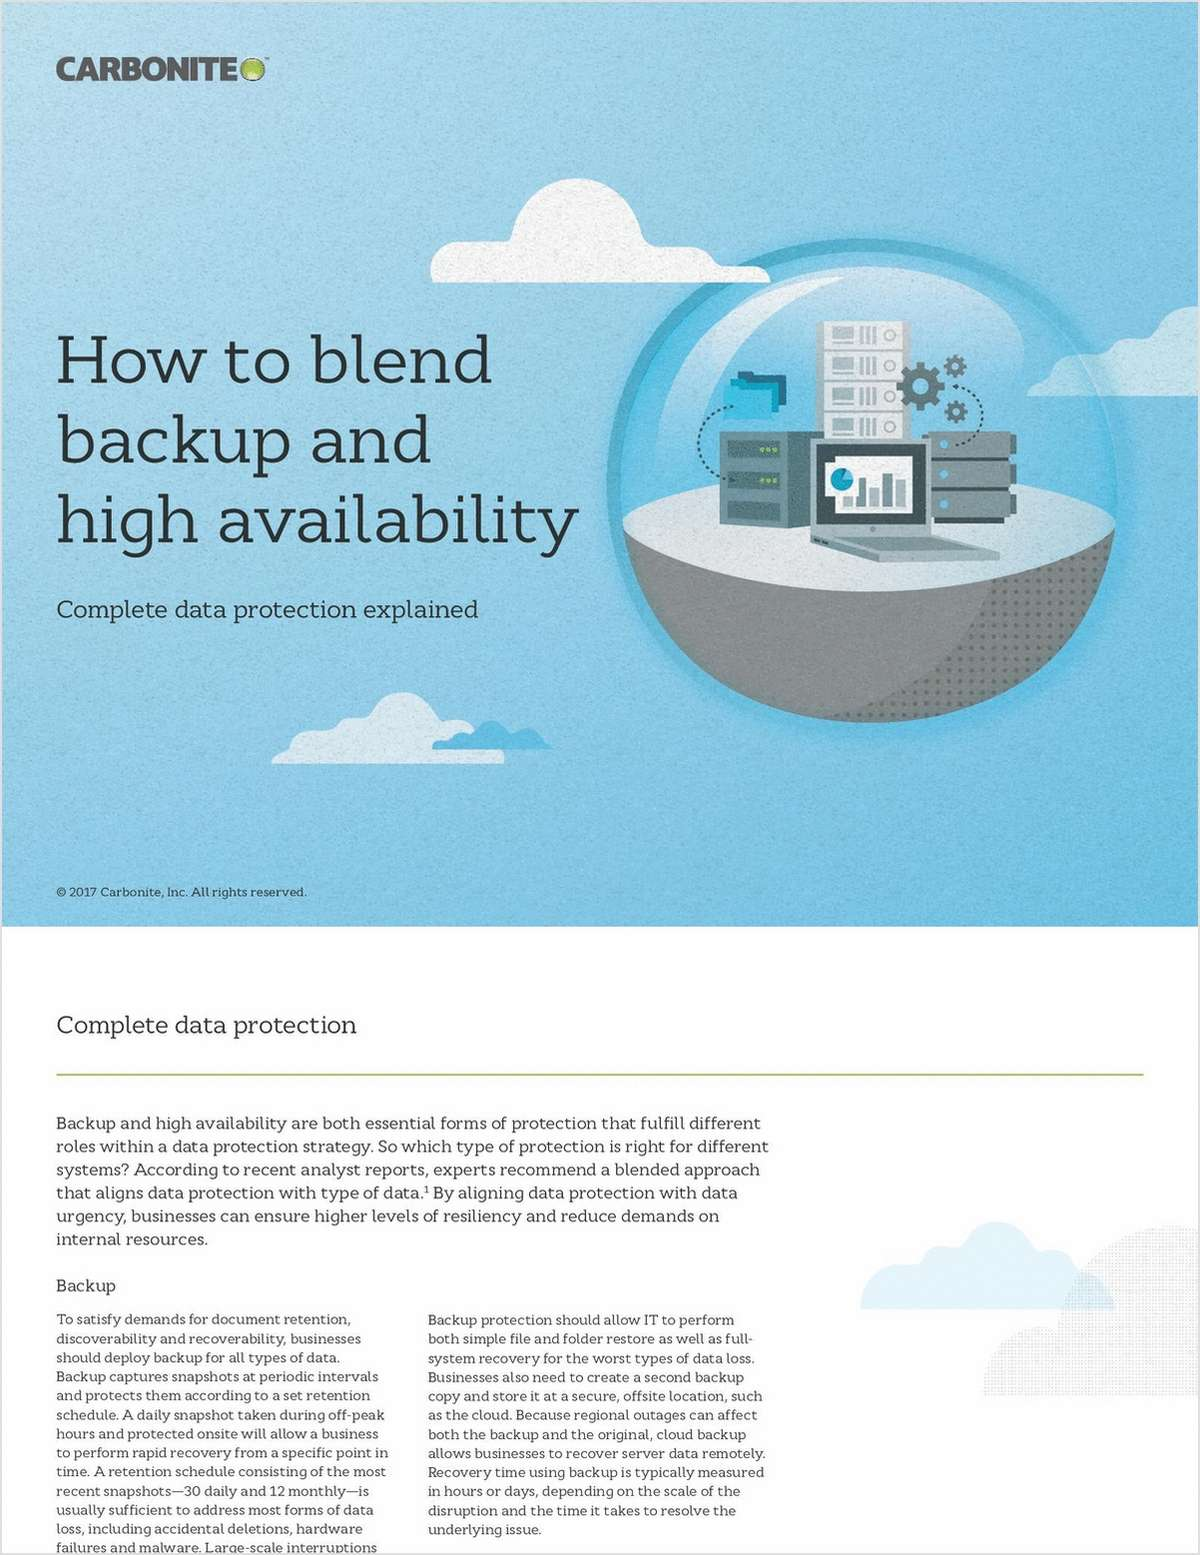 How to Blend Backup and High Availability